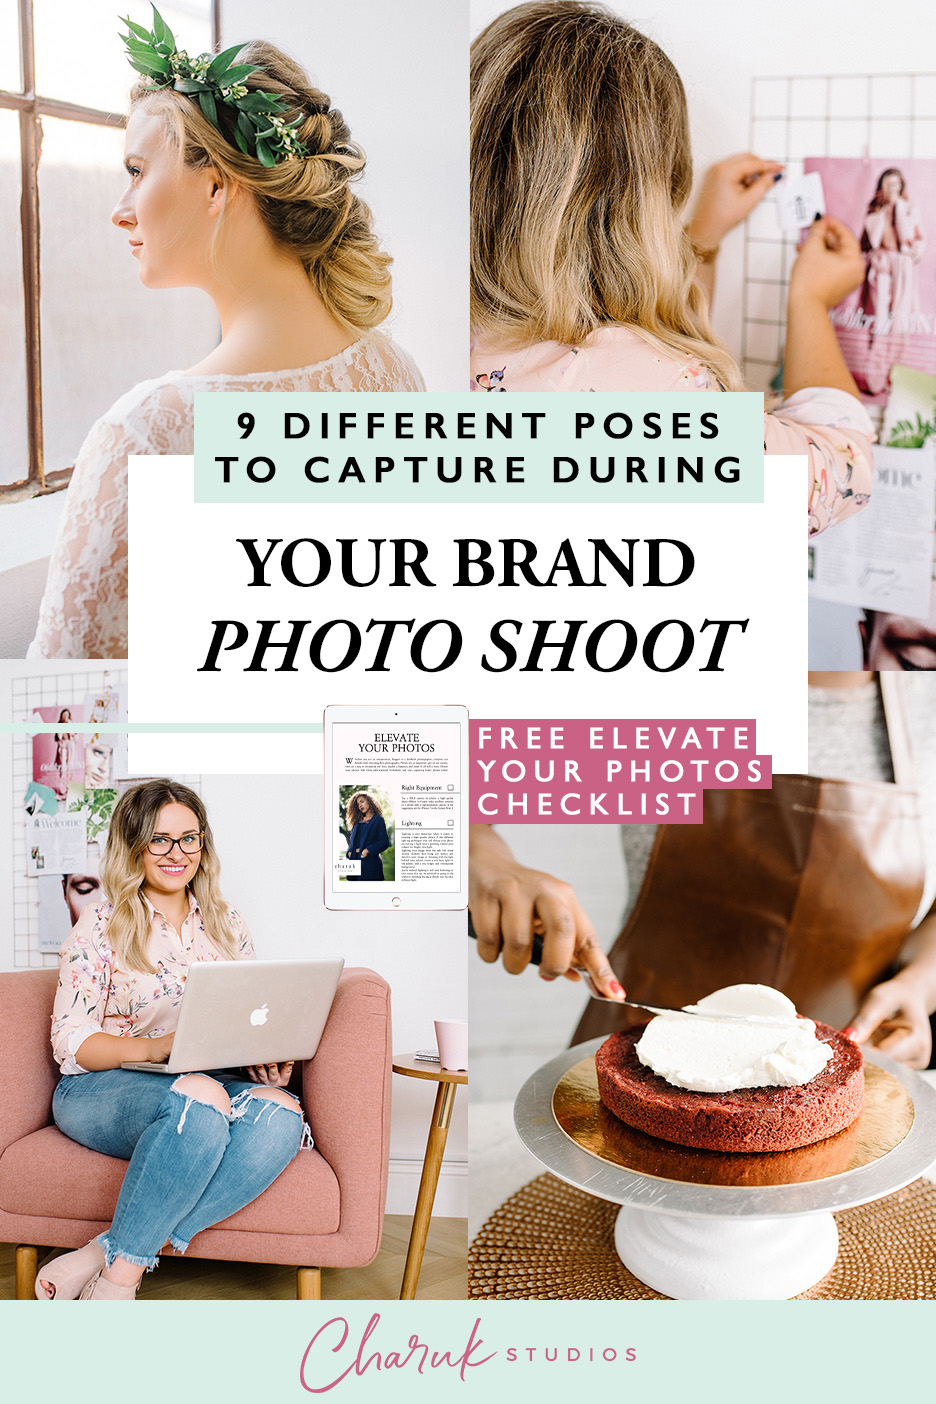 9 Different Poses to Capture During Your Brand Photo Shoot by Charuk Studios